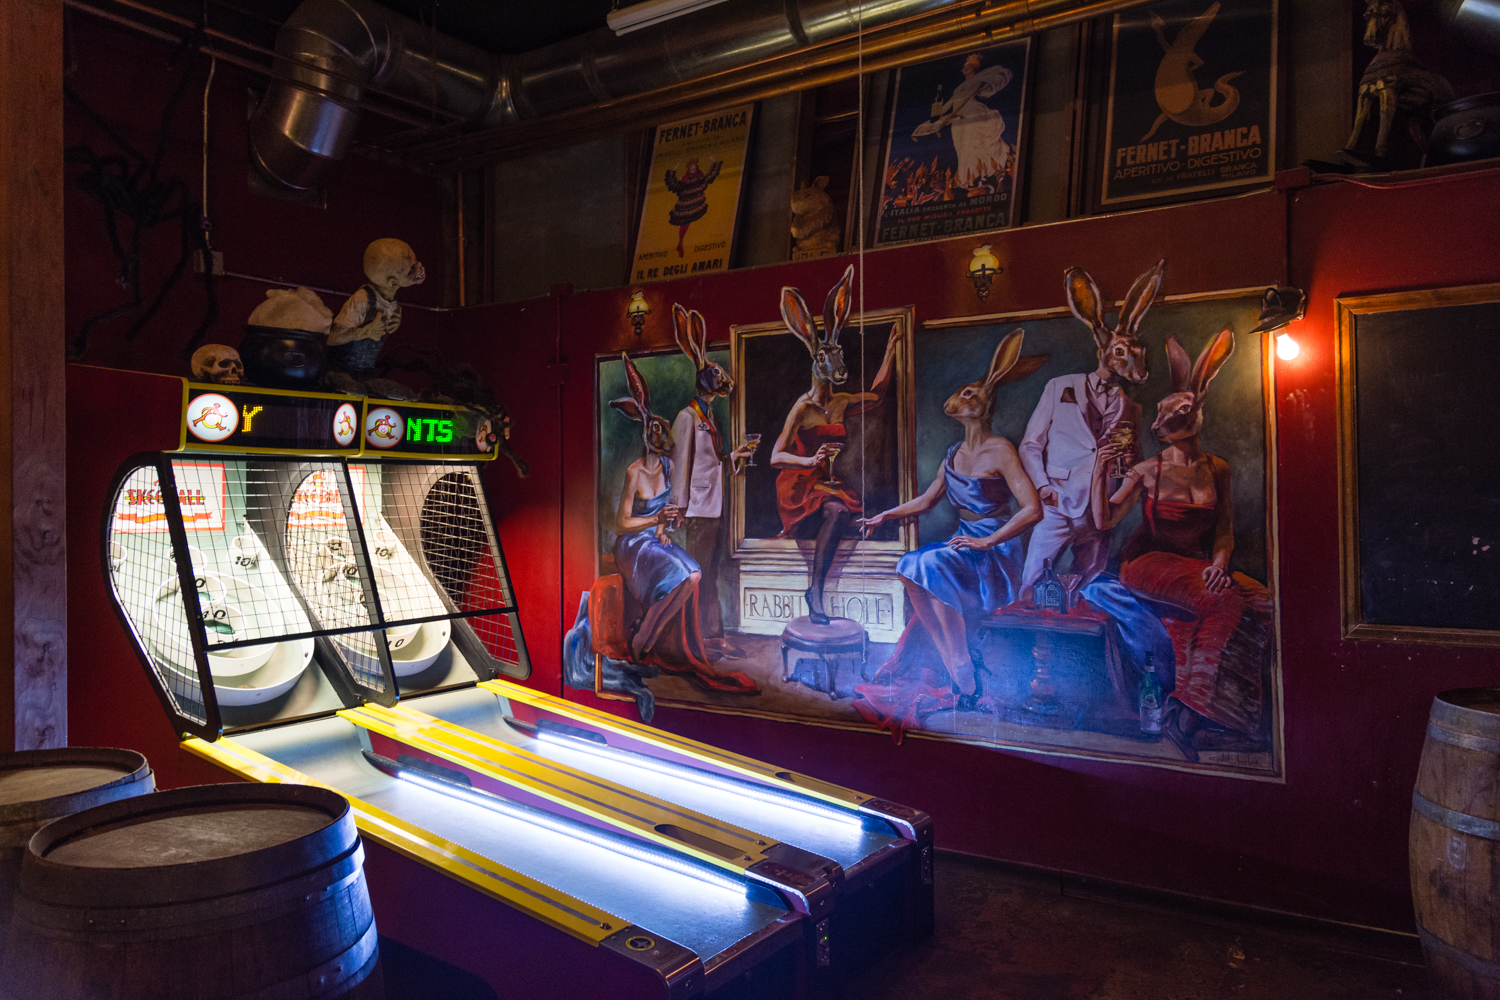 Skee ball, a popular past time in the US